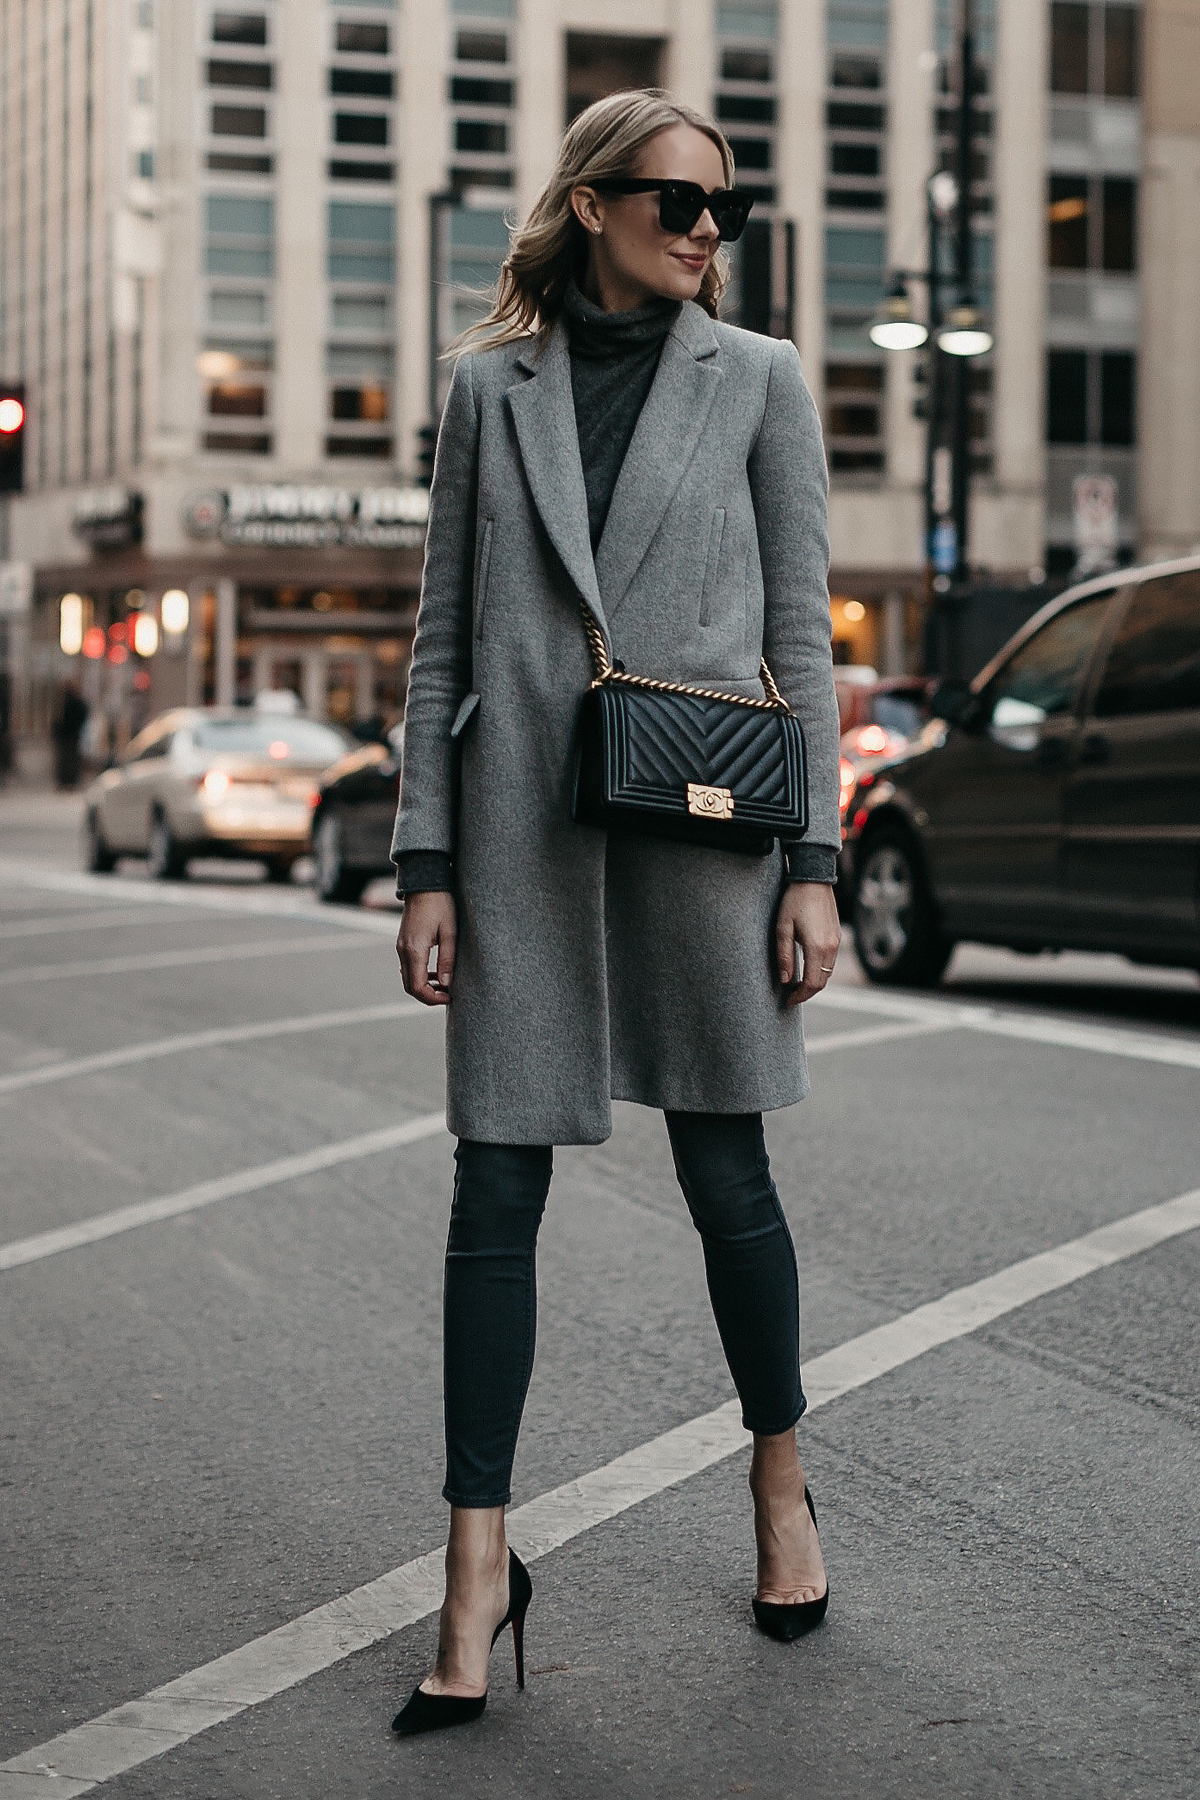 Blonde Woman Wearing Grey Coat Grey Turtleneck Sweater Grey Skinny Jeans Black Pumps Black Chanel Boy Bag Fashion Jackson Dallas Blogger Fashion Blogger Street Style